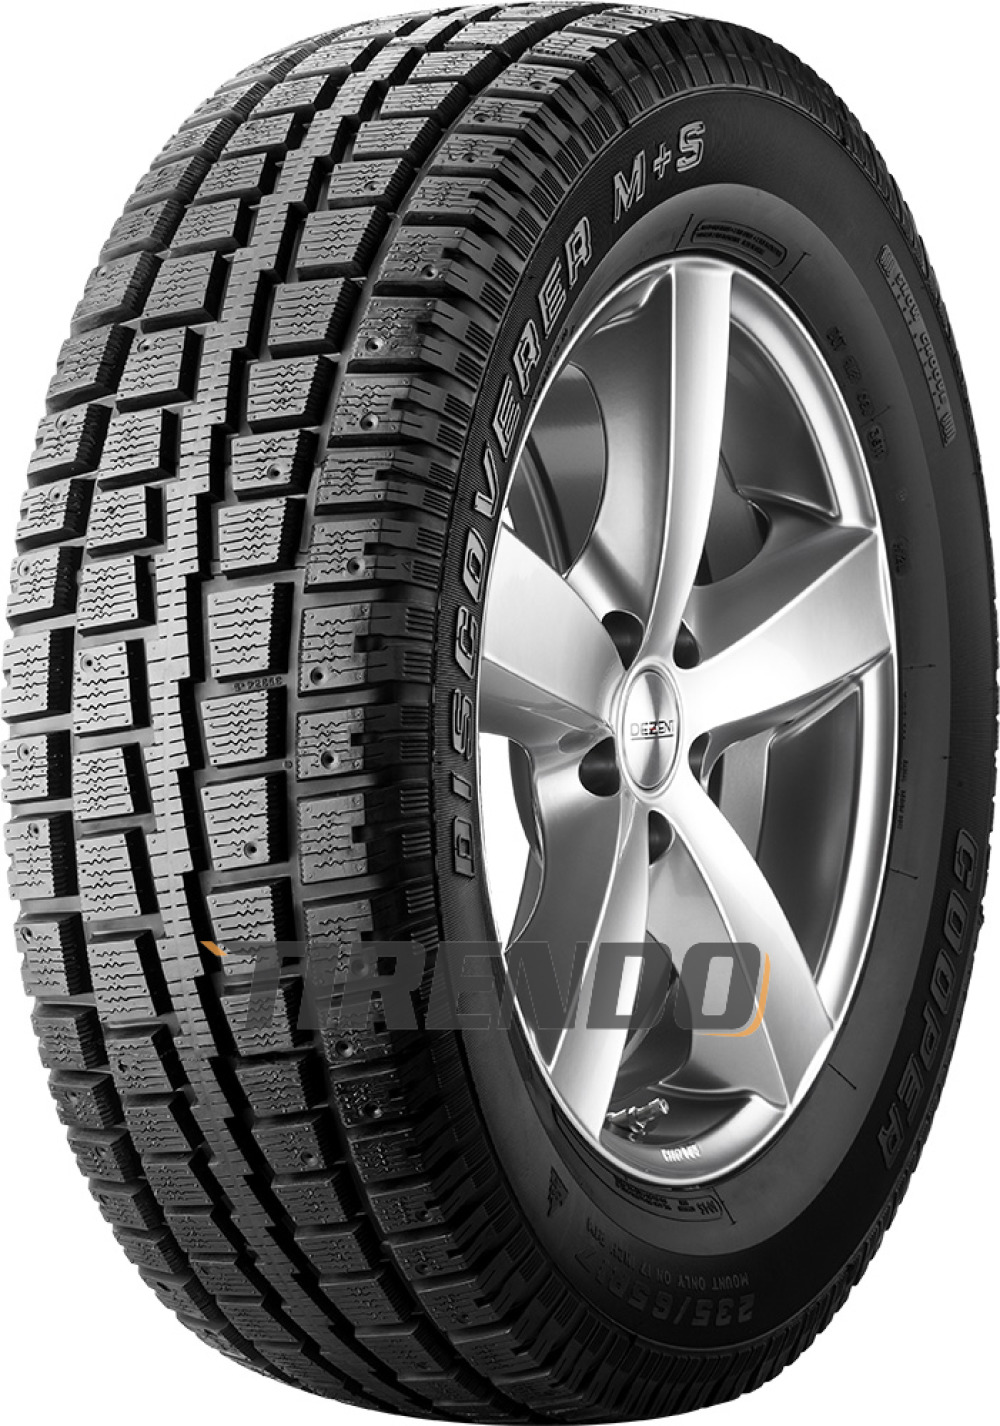 Image For Cooper Discoverer M+S ( 245/75 R16 111S , pneumatico chiodabile )